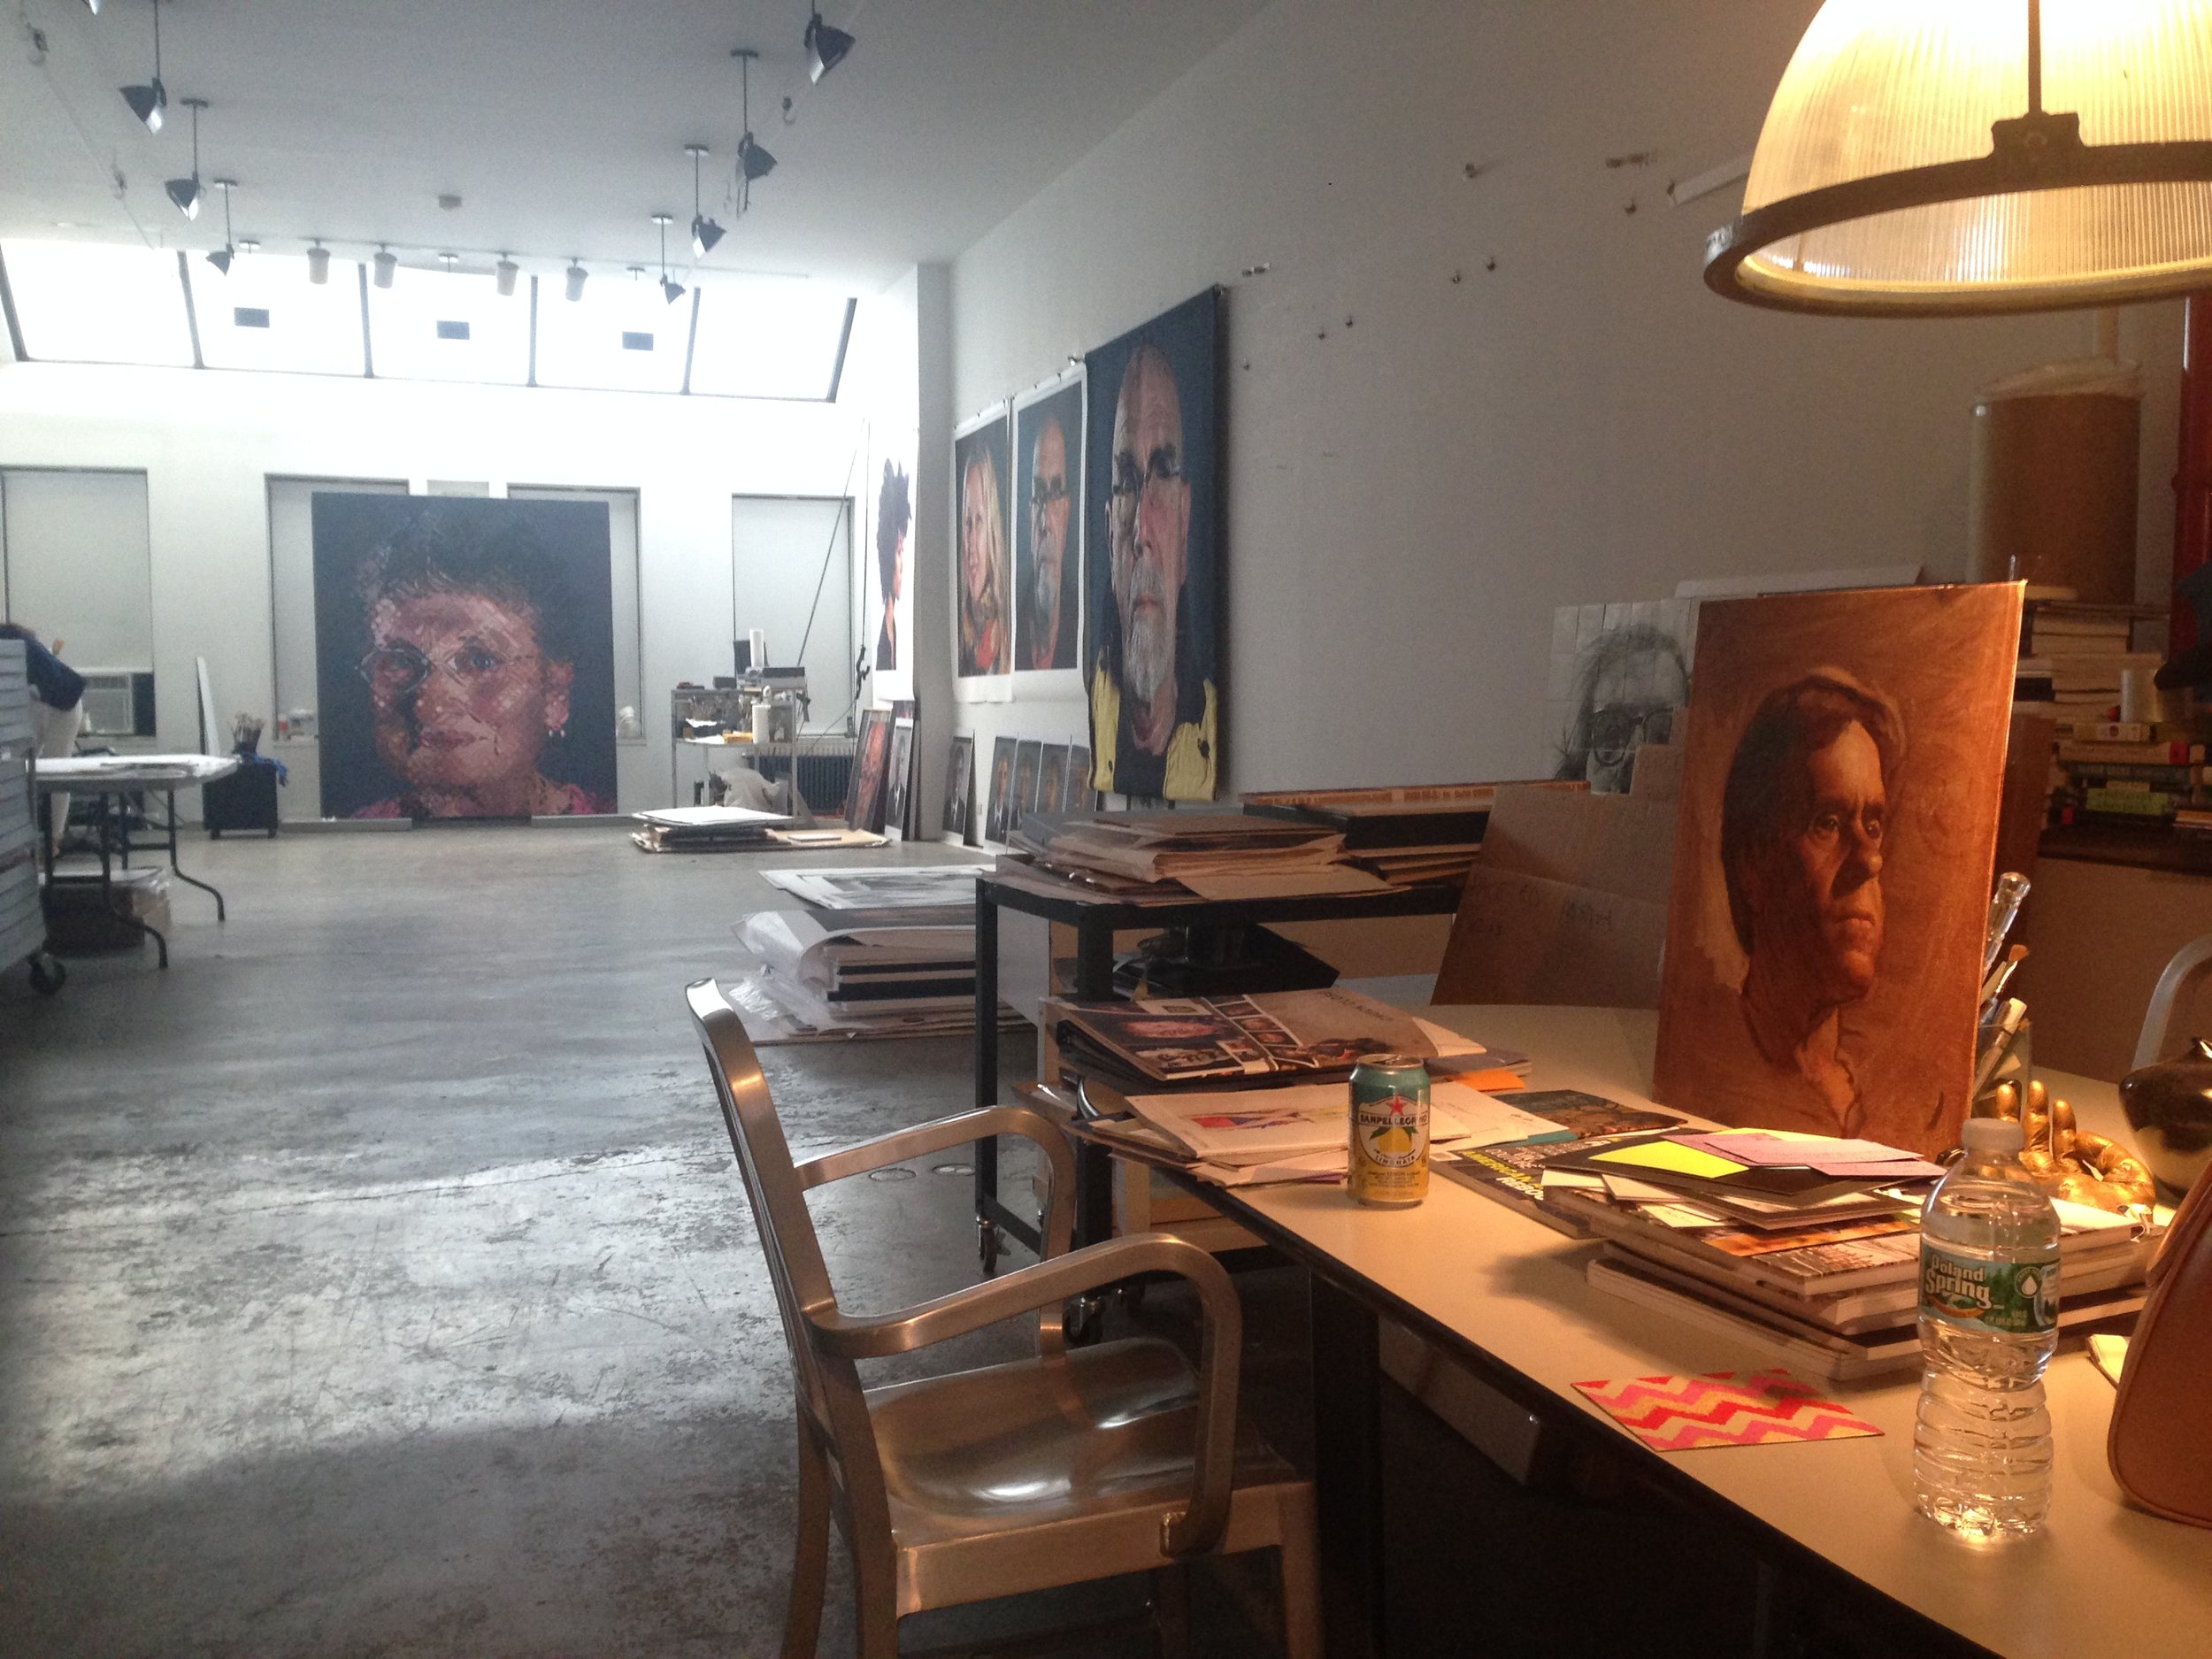 Preeminent artists like Chuck Close have looked on as Max moved from his traditional skill sets(Max's portrait on table in Chuck's studio)into innovative directions in contemporary art.